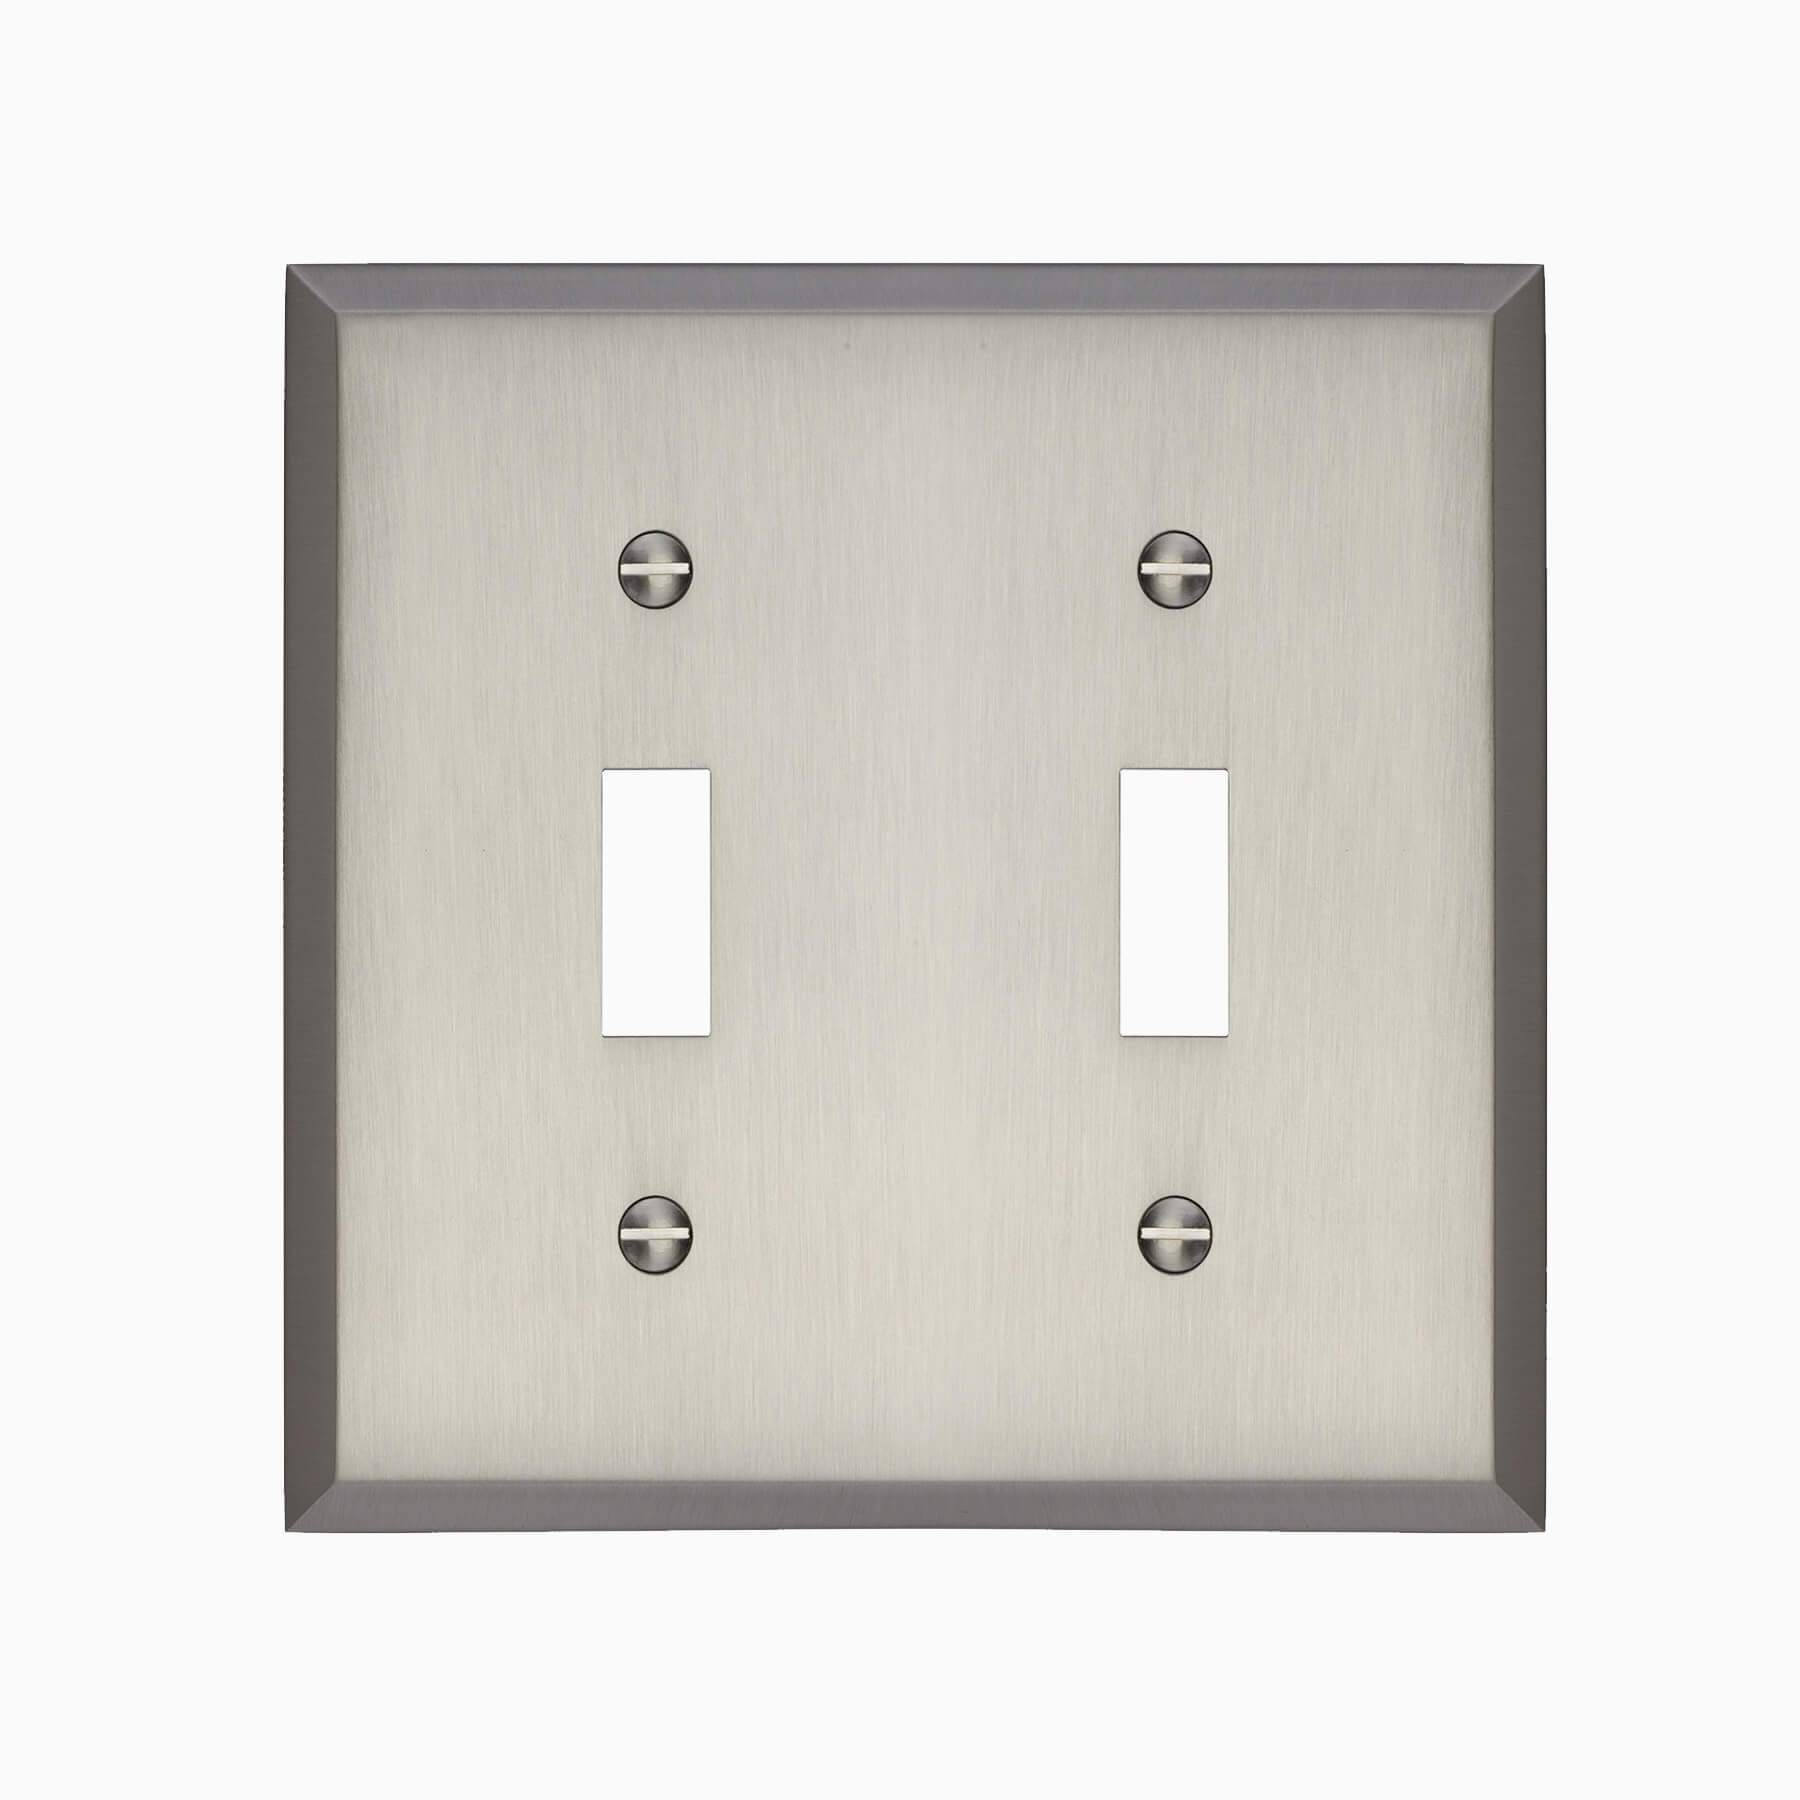 Graham Double Light Switch Cover - Wall Mounted Electrical Switch Plate